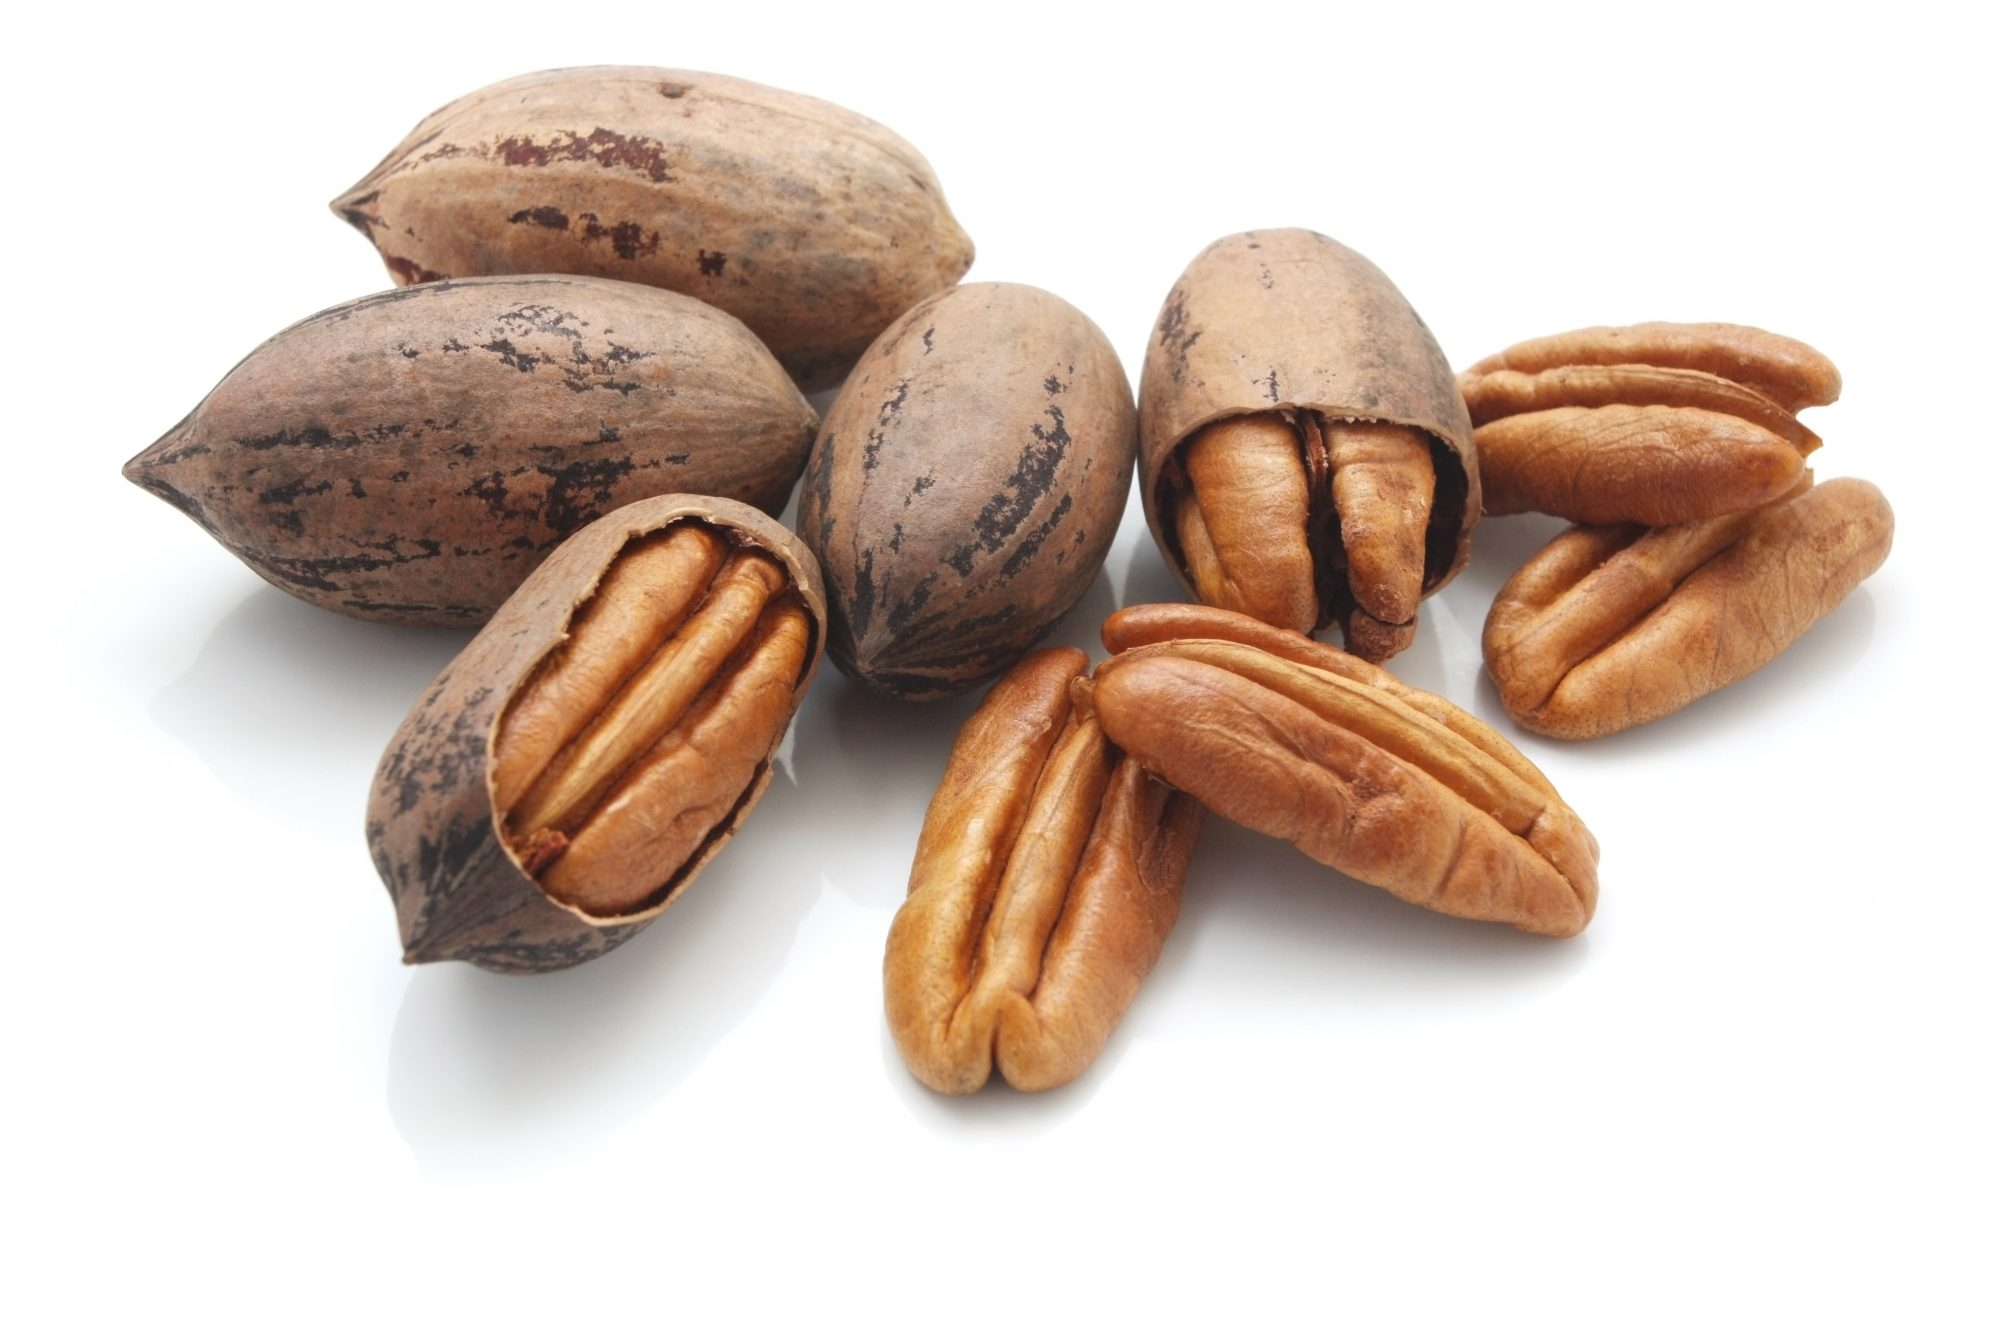 How Do You Pronounce 'Pecan'?